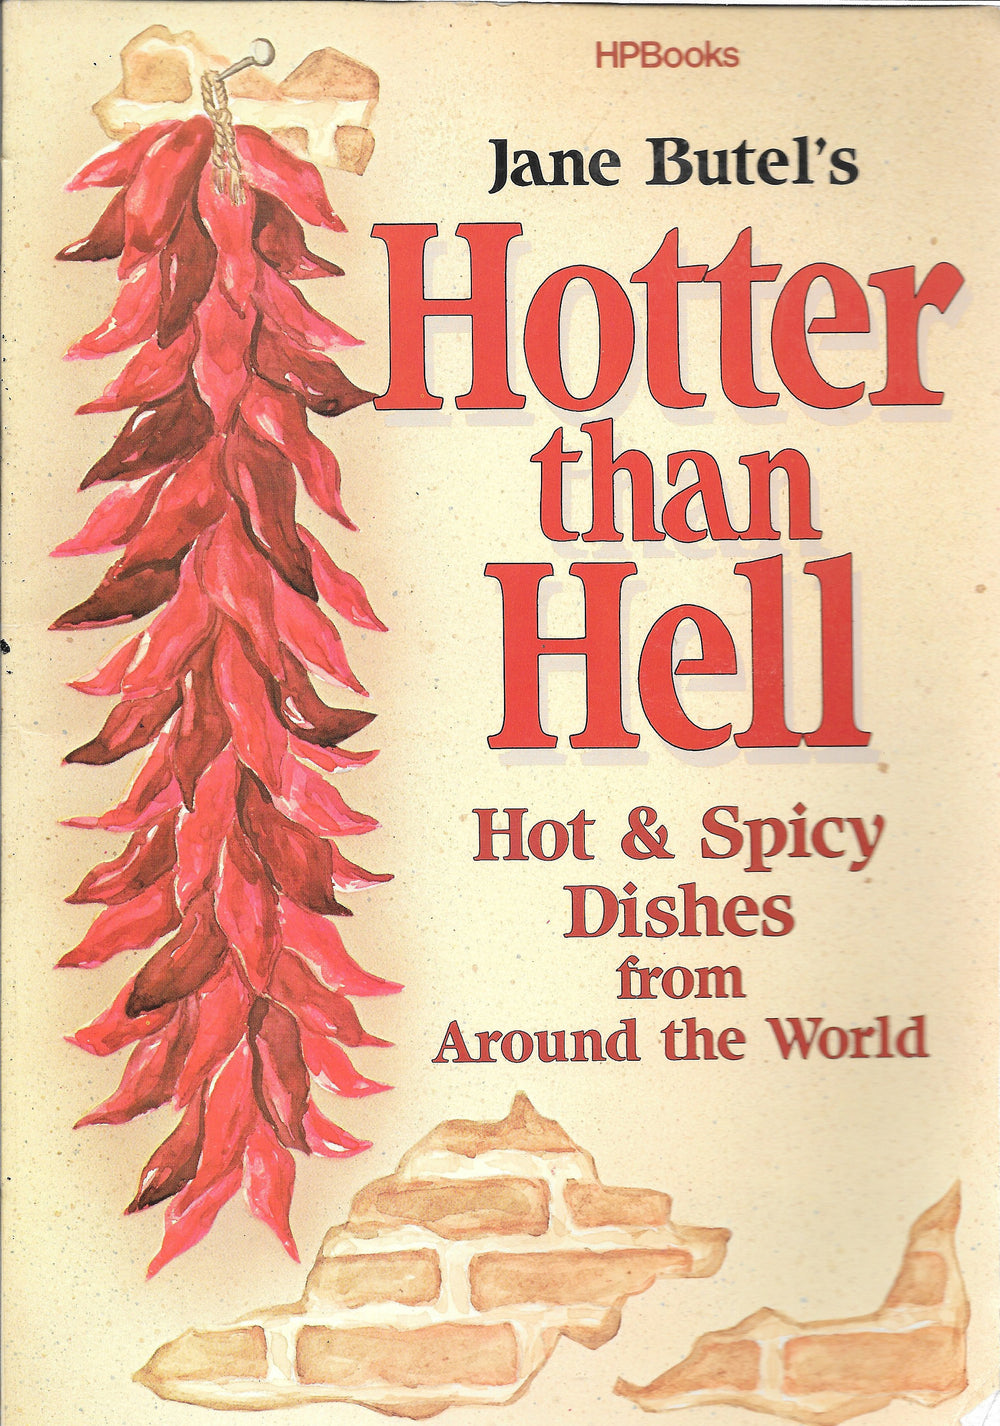 Hotter than Hell-Hot & Spicy Dishes from Around the World  by Jane Butel, Jane Butel